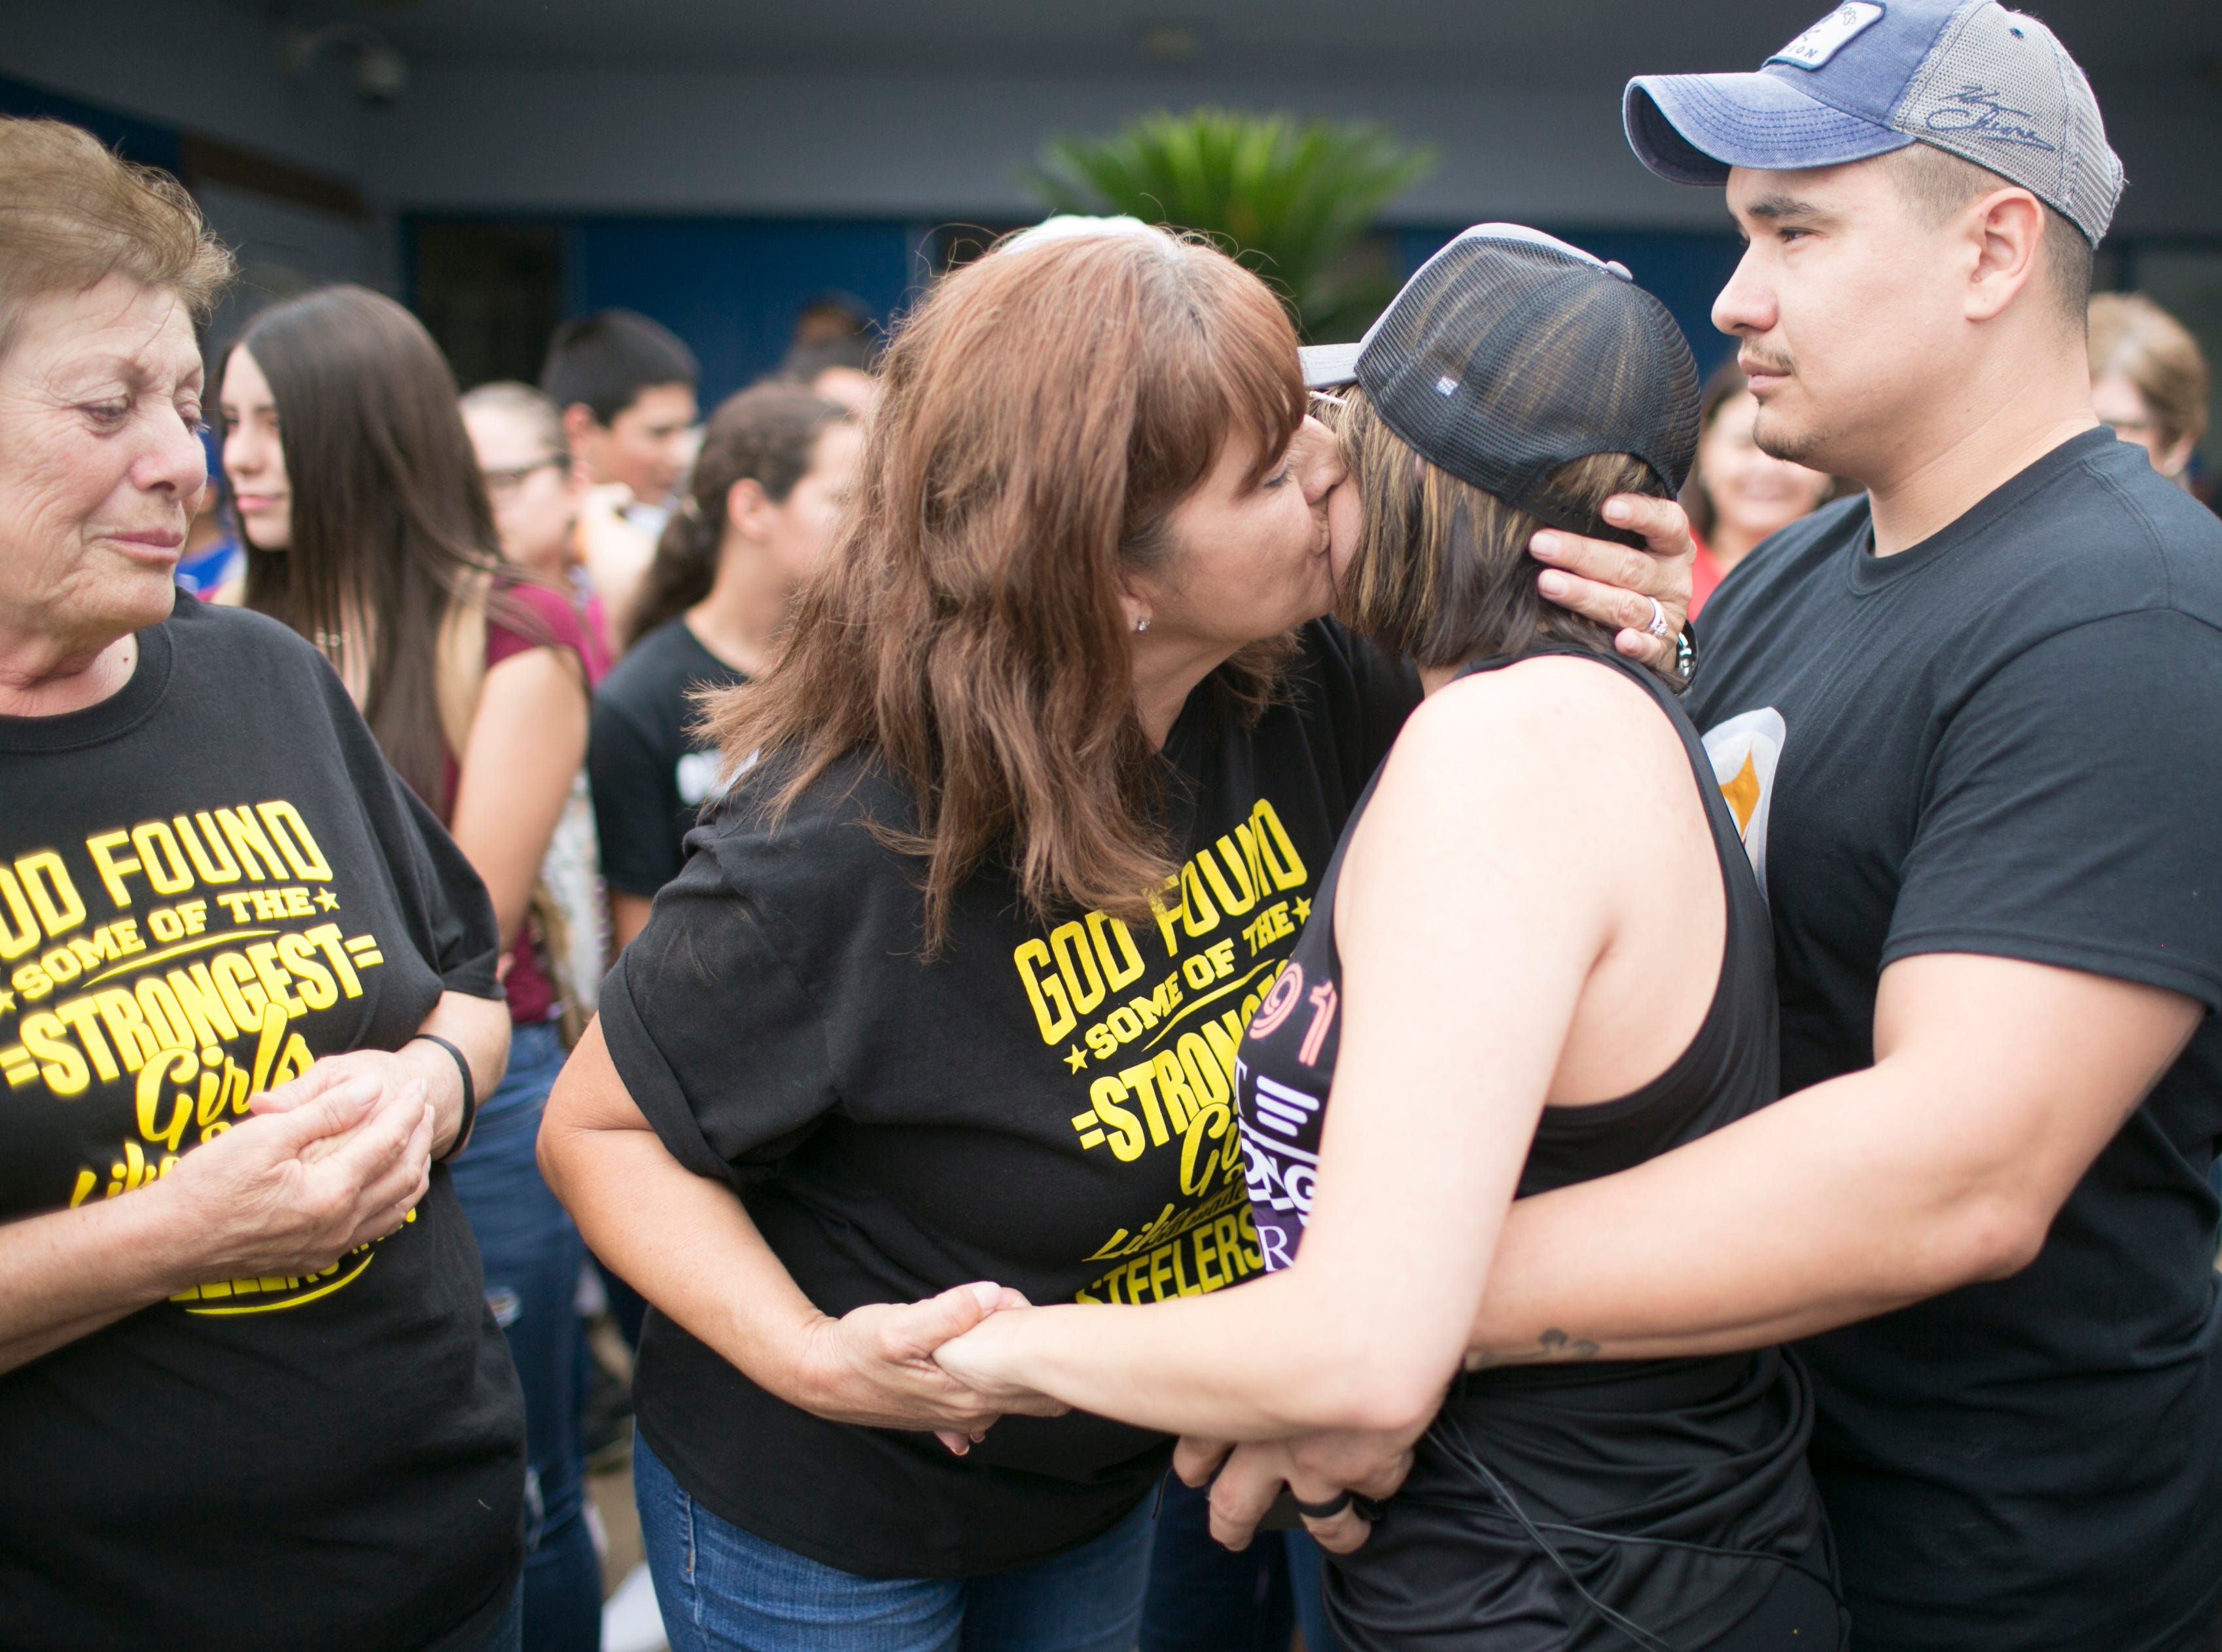 Barb Martinez hugs her daughter Jovanna Calzadillas after a balloon release to honor the 48 people killed in the mass shooting at the Route 91 Harvest Festival in Las Vegas. Calzadillas was severely wounded in the attack and has spent the past year in physical therapy. Jovanna and her husband Frank Calzadillas spent the one year anniversary of the shooting  with family and friends at Hayden High School.